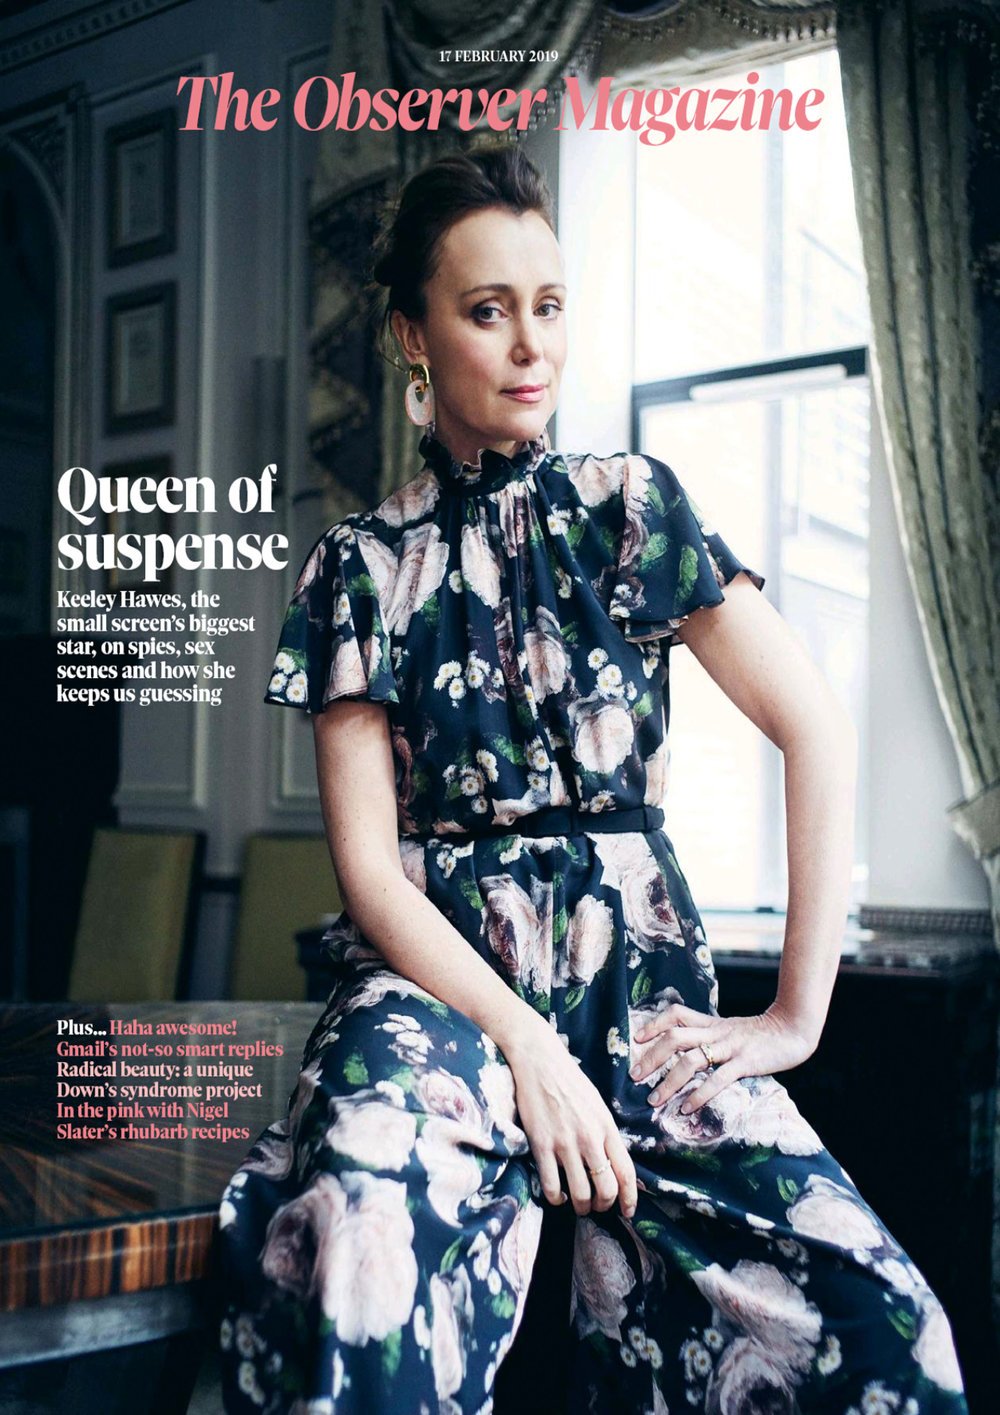 The Observer Magazine - 17 February 2019 issue